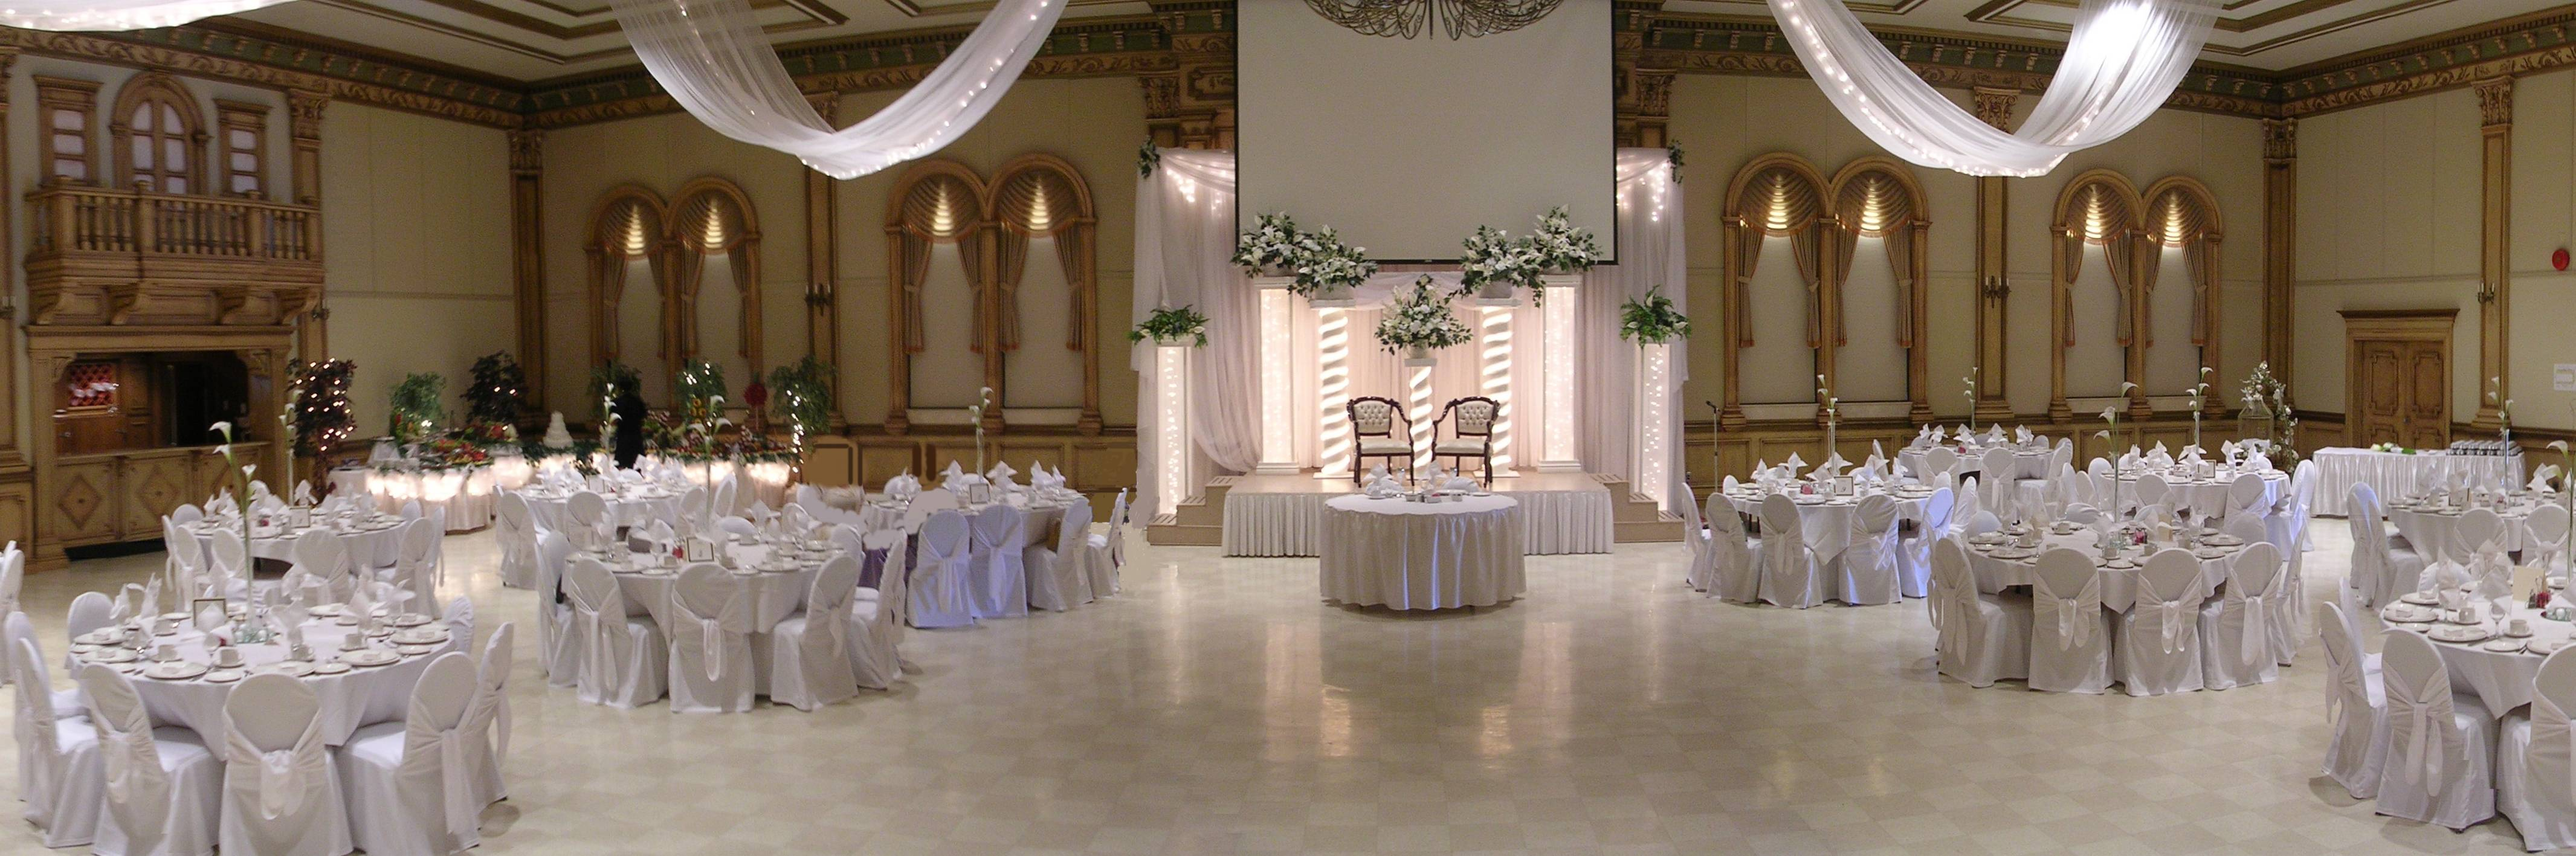 All white!! Simple but elegant | My Passion for Event Planning ...